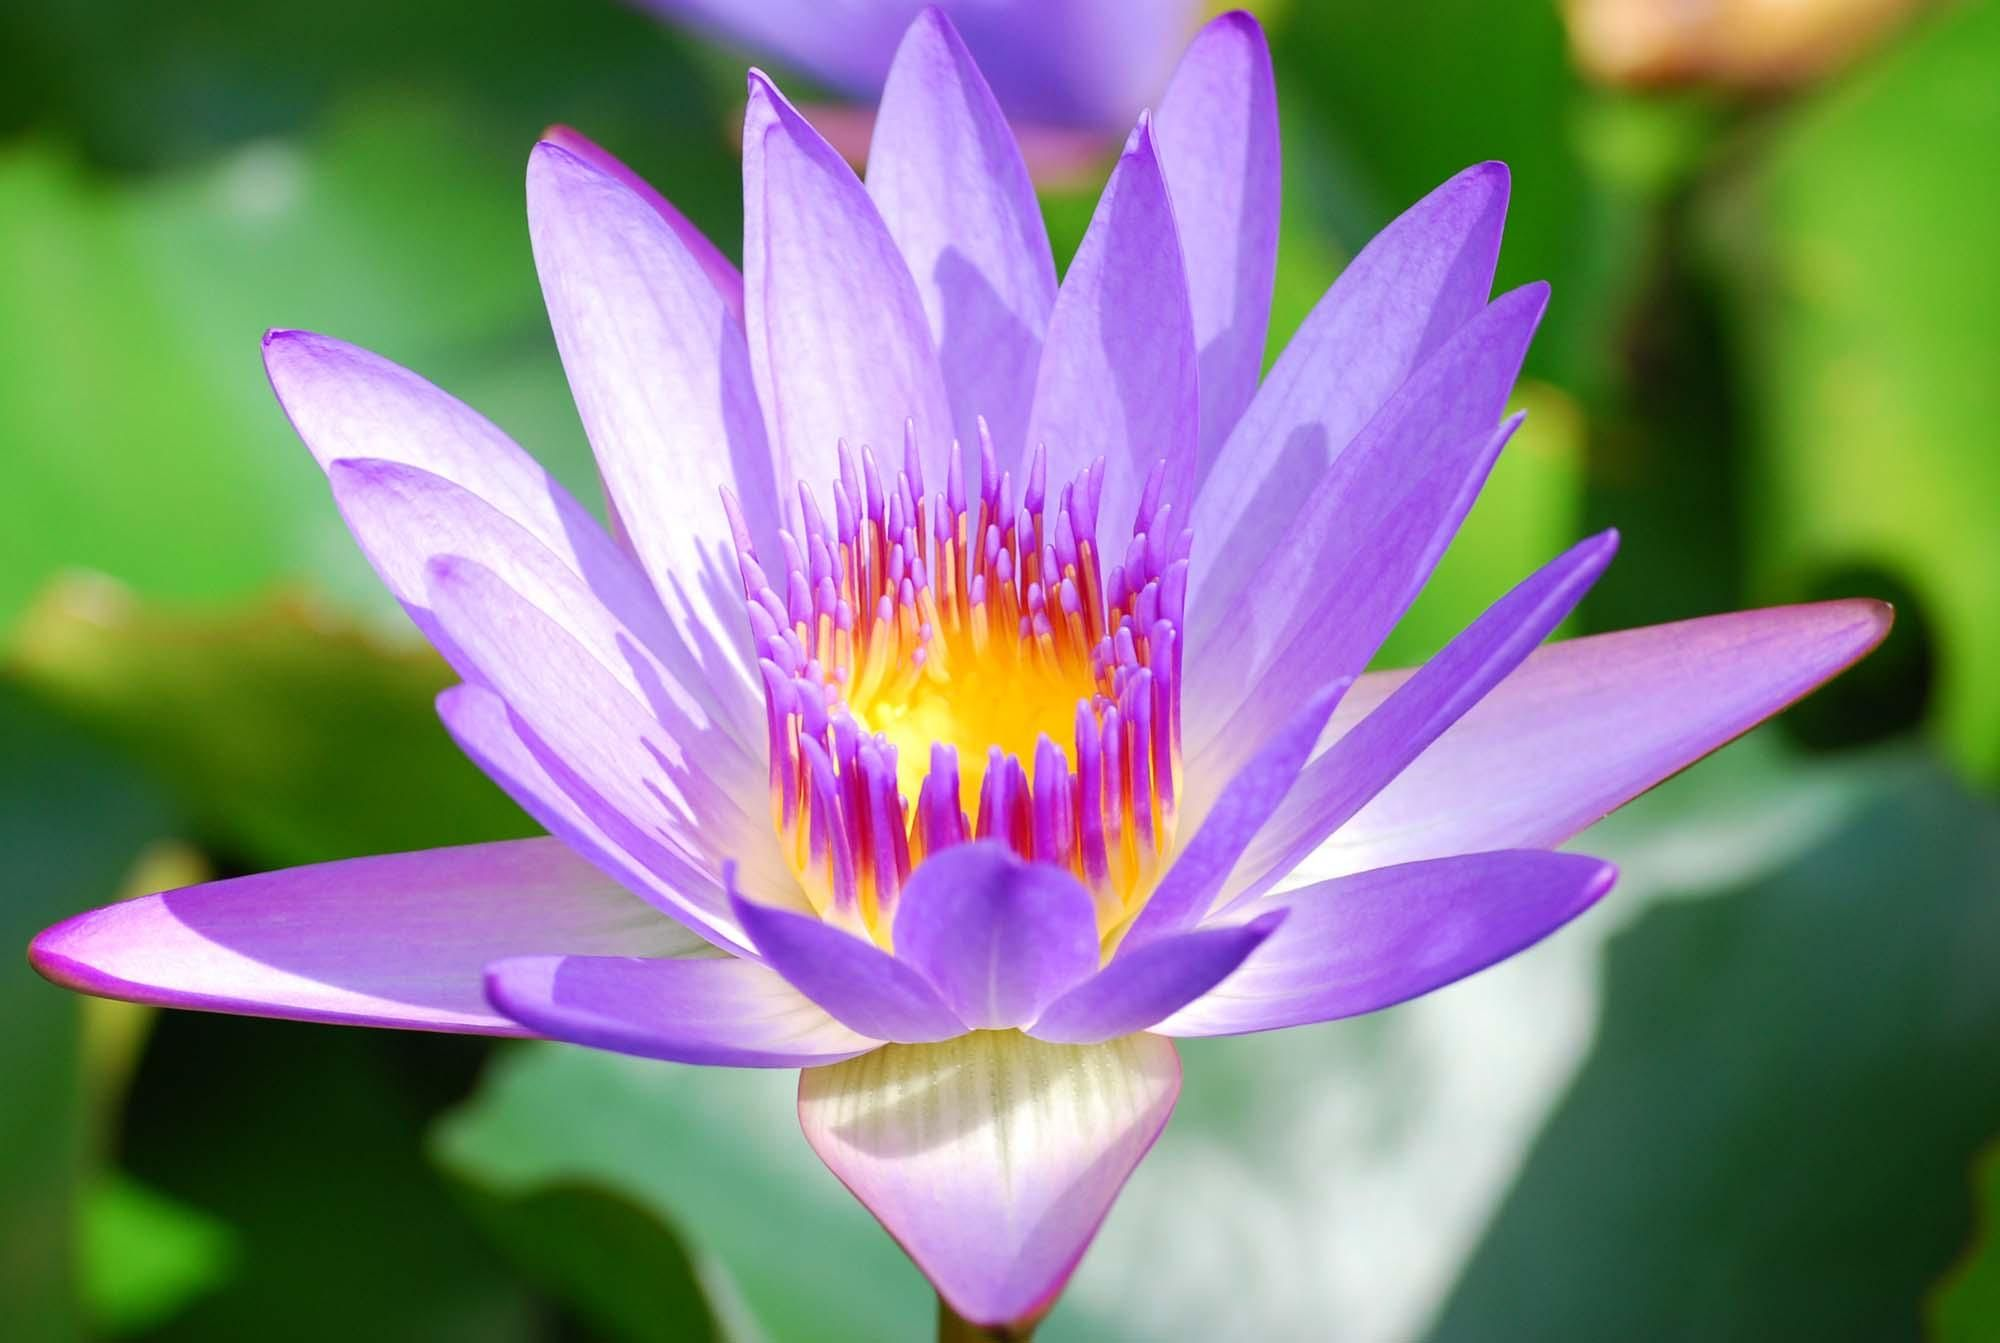 Purple Lotus Flower Wallpapers For Android Lotus flower